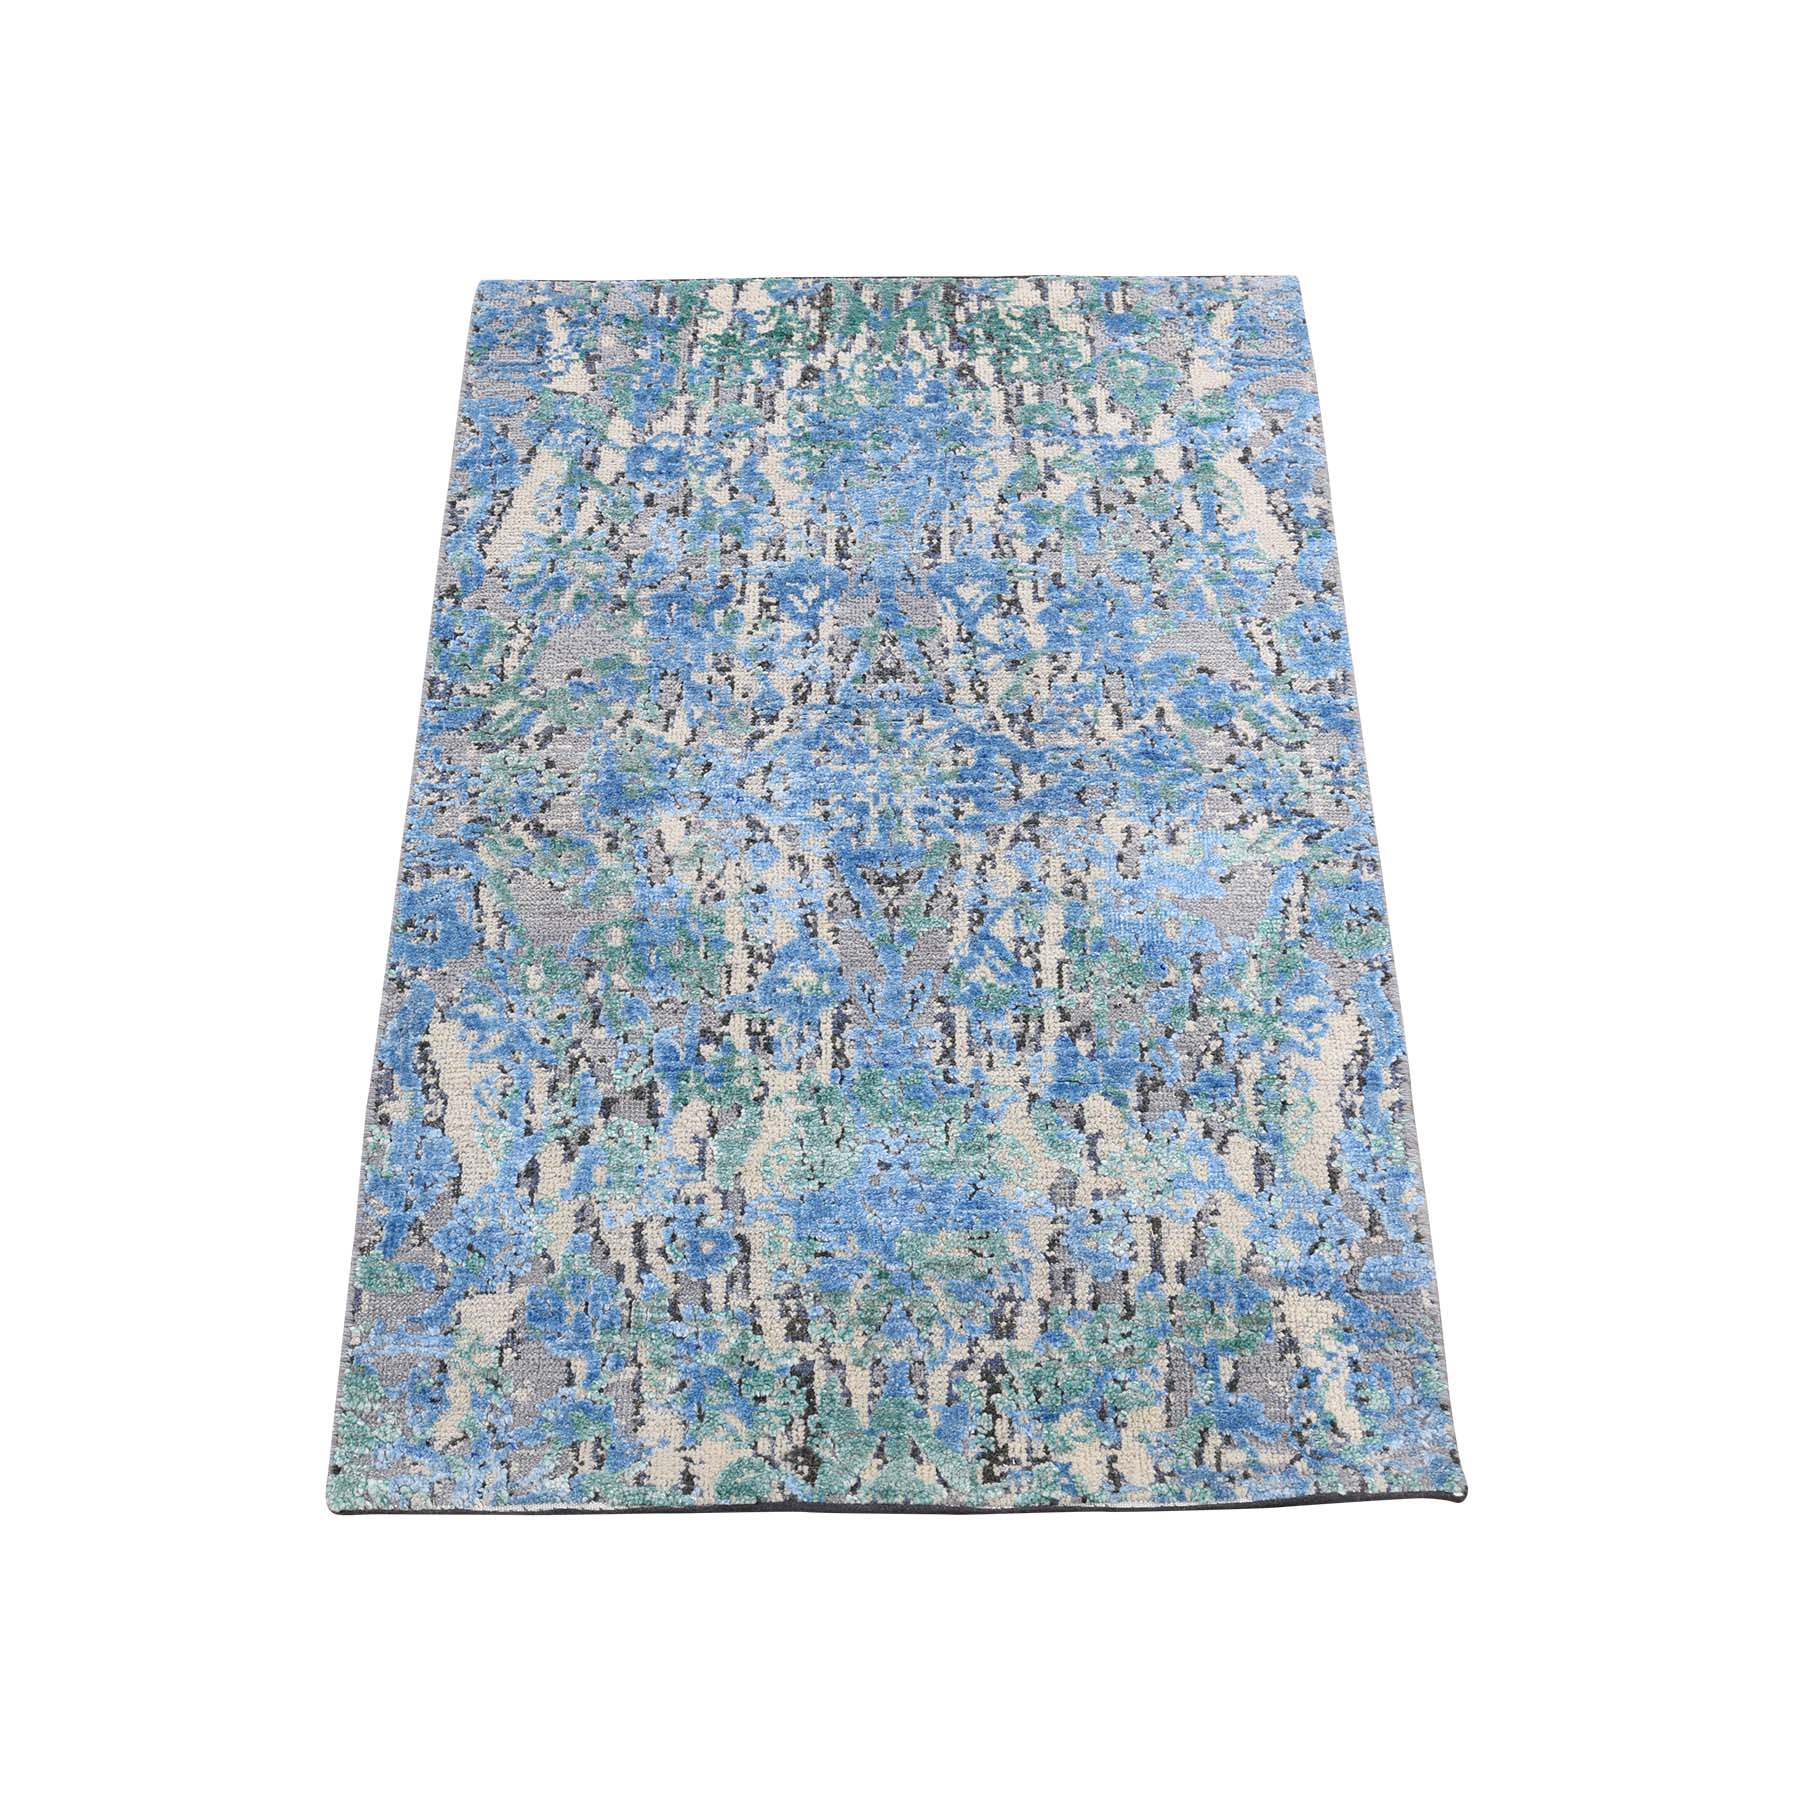 Mid Century Modern Collection Hand Knotted Blue Rug No: 0188880